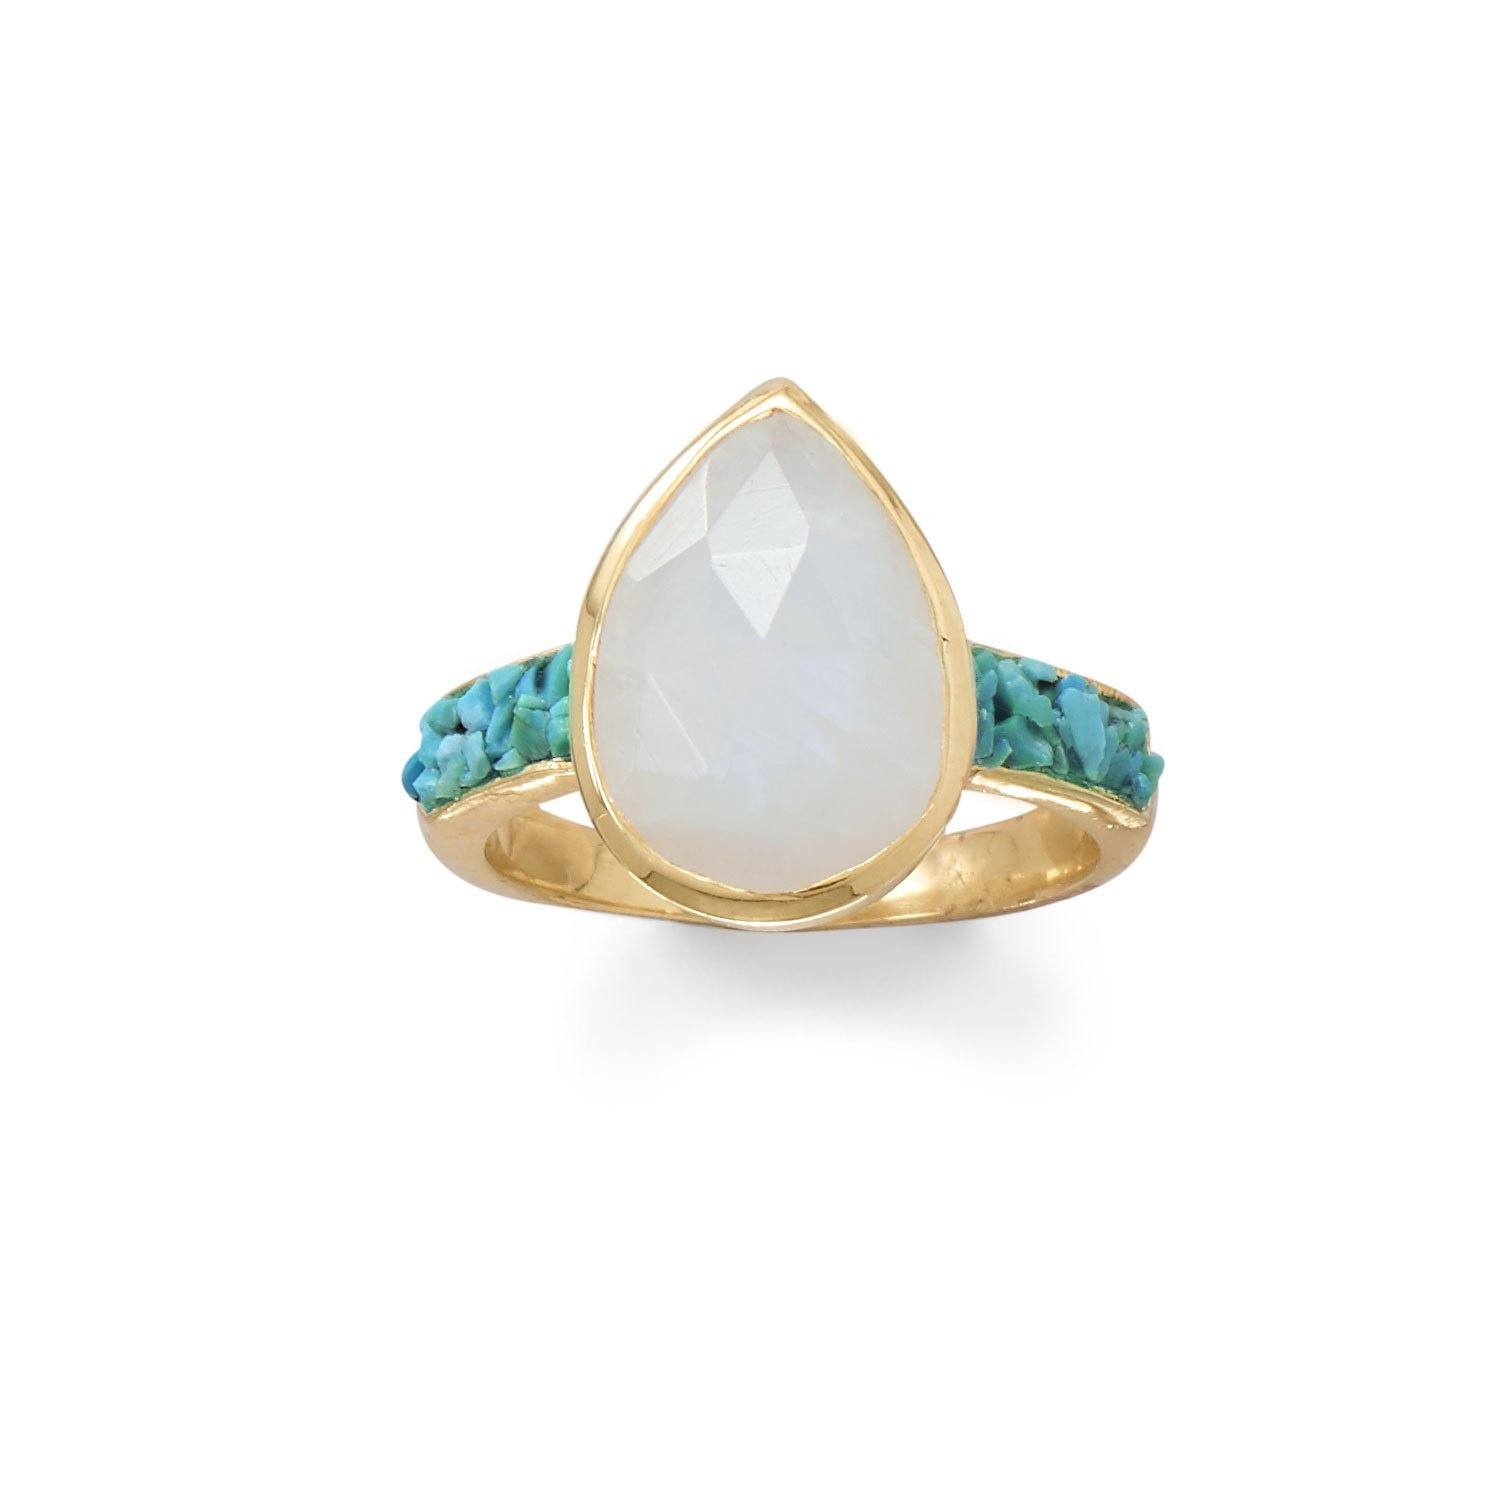 14 Karat Gold Plated Rainbow Moonstone and Crushed Turquoise Ring - Cece & Me - Home and Gifts